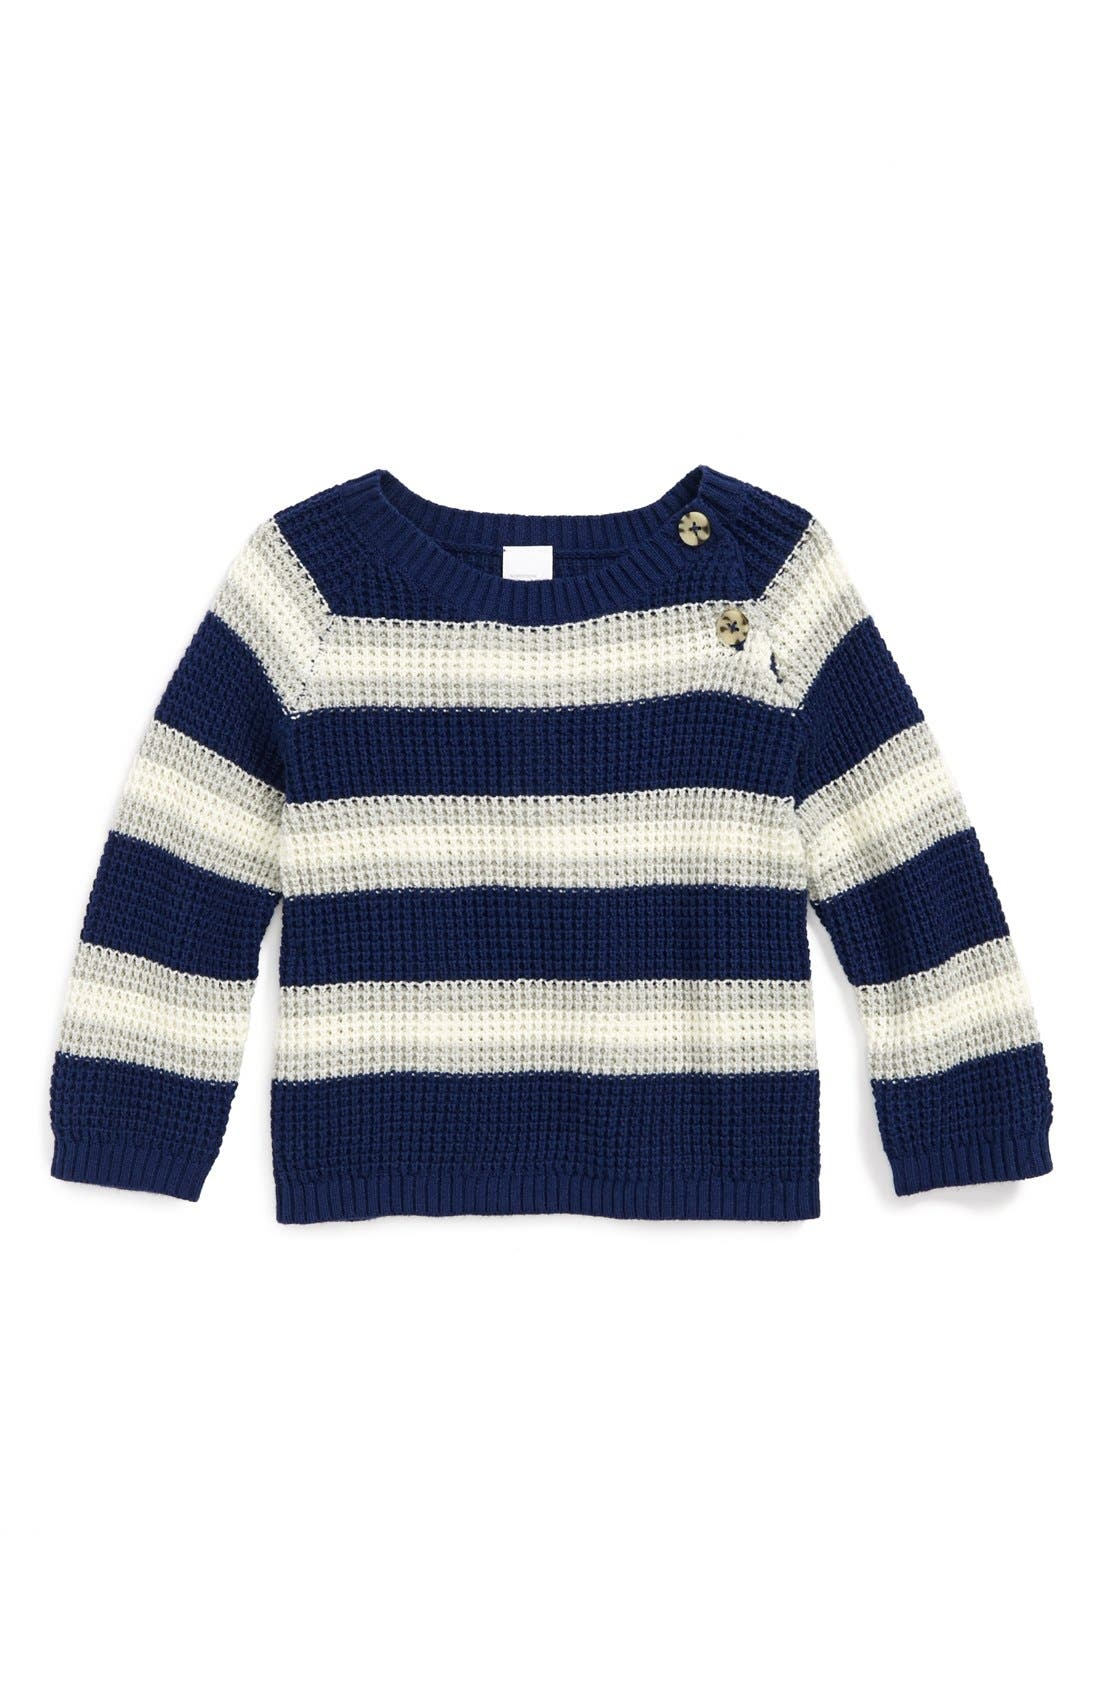 Alternate Image 1 Selected - Nordstrom Baby Stripe Sweater (Baby Boys)